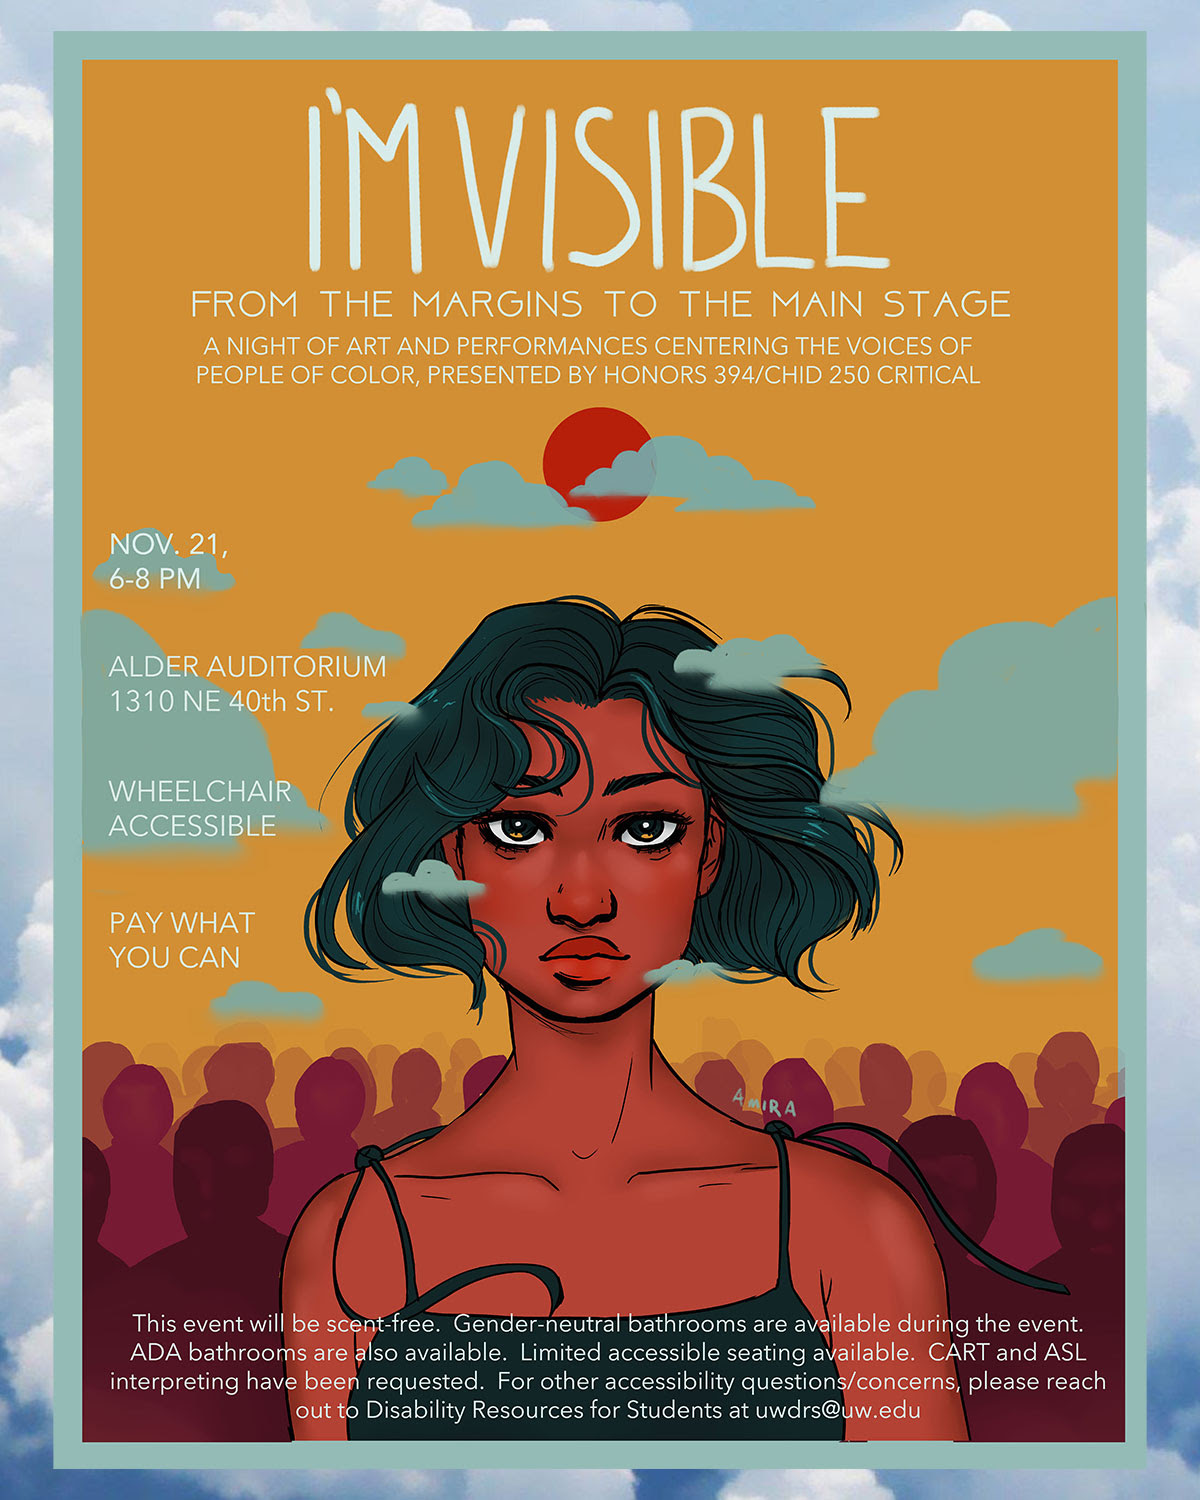 imvisible-poster-1.jpg